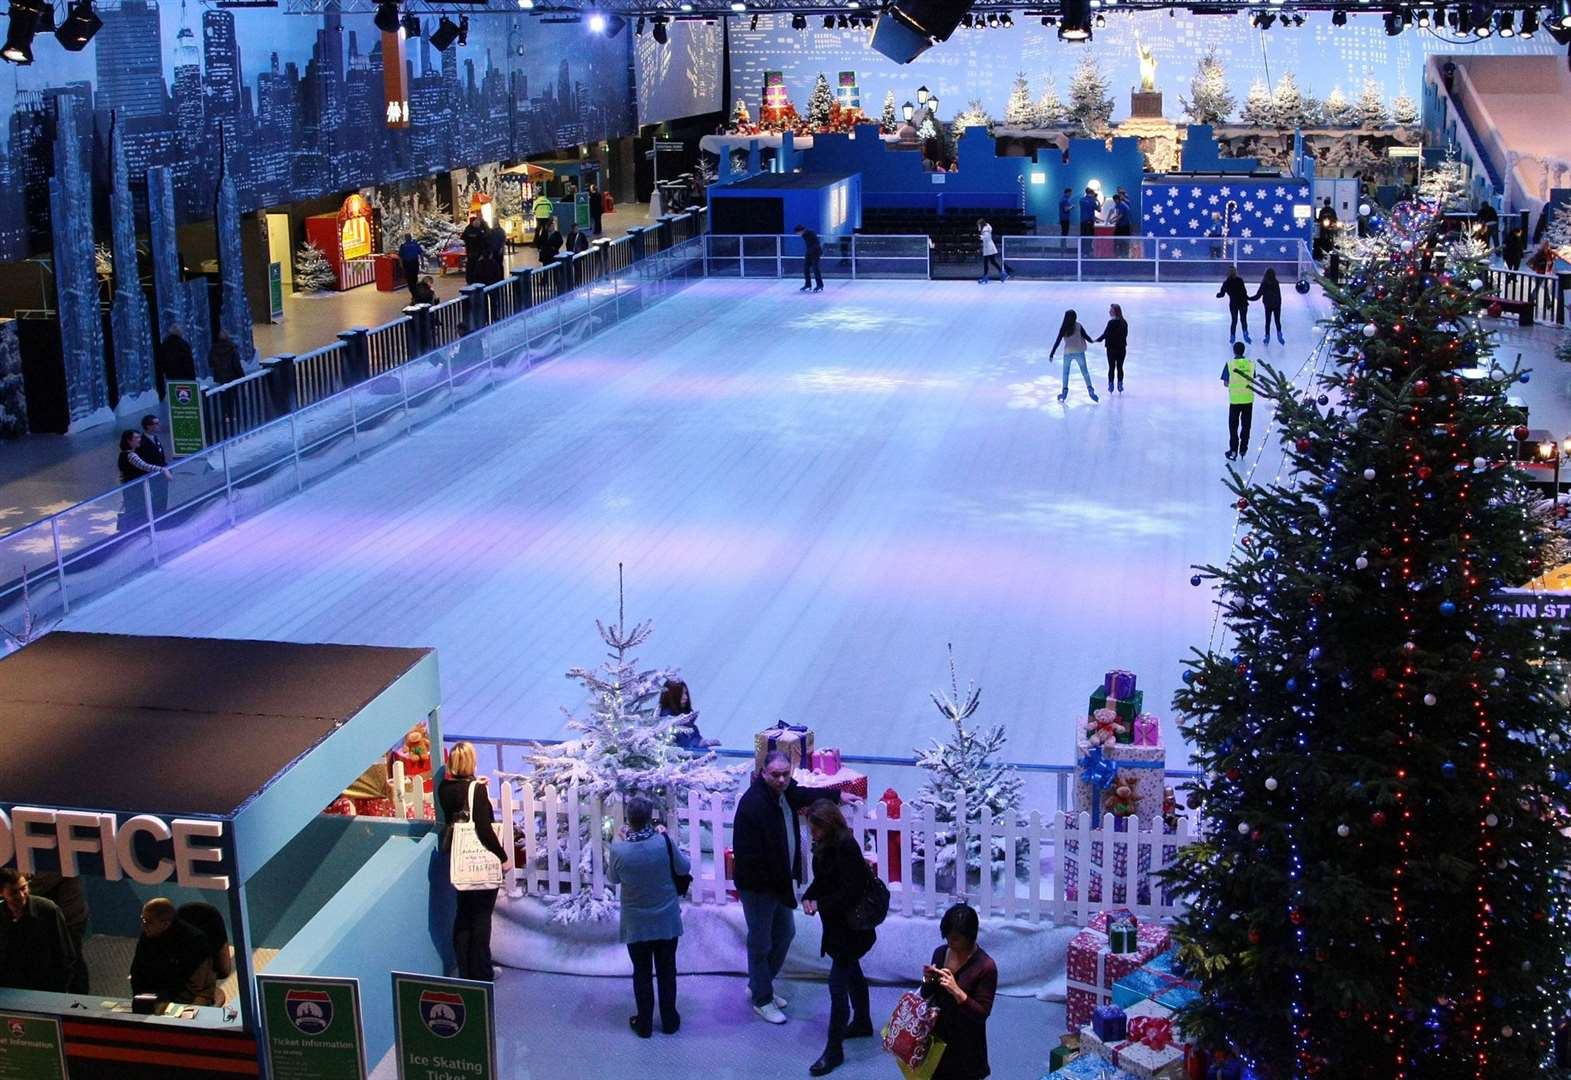 30 Christmas ice rink jobs up for grabs